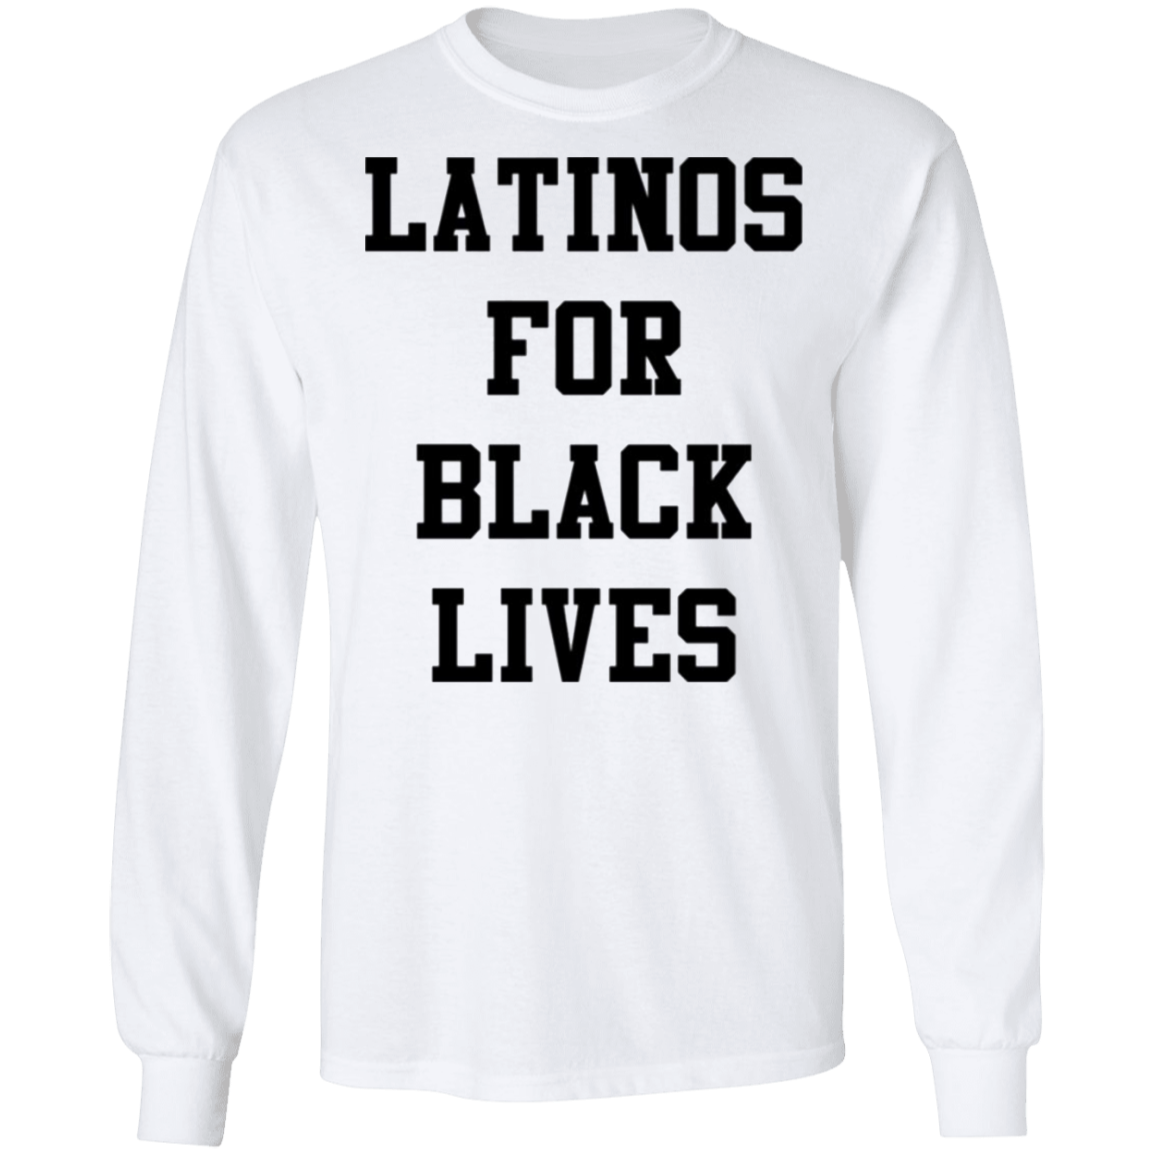 Latinos For Black Lives Sweatshirt Stop Killing Black People George Floyd Protest Blm